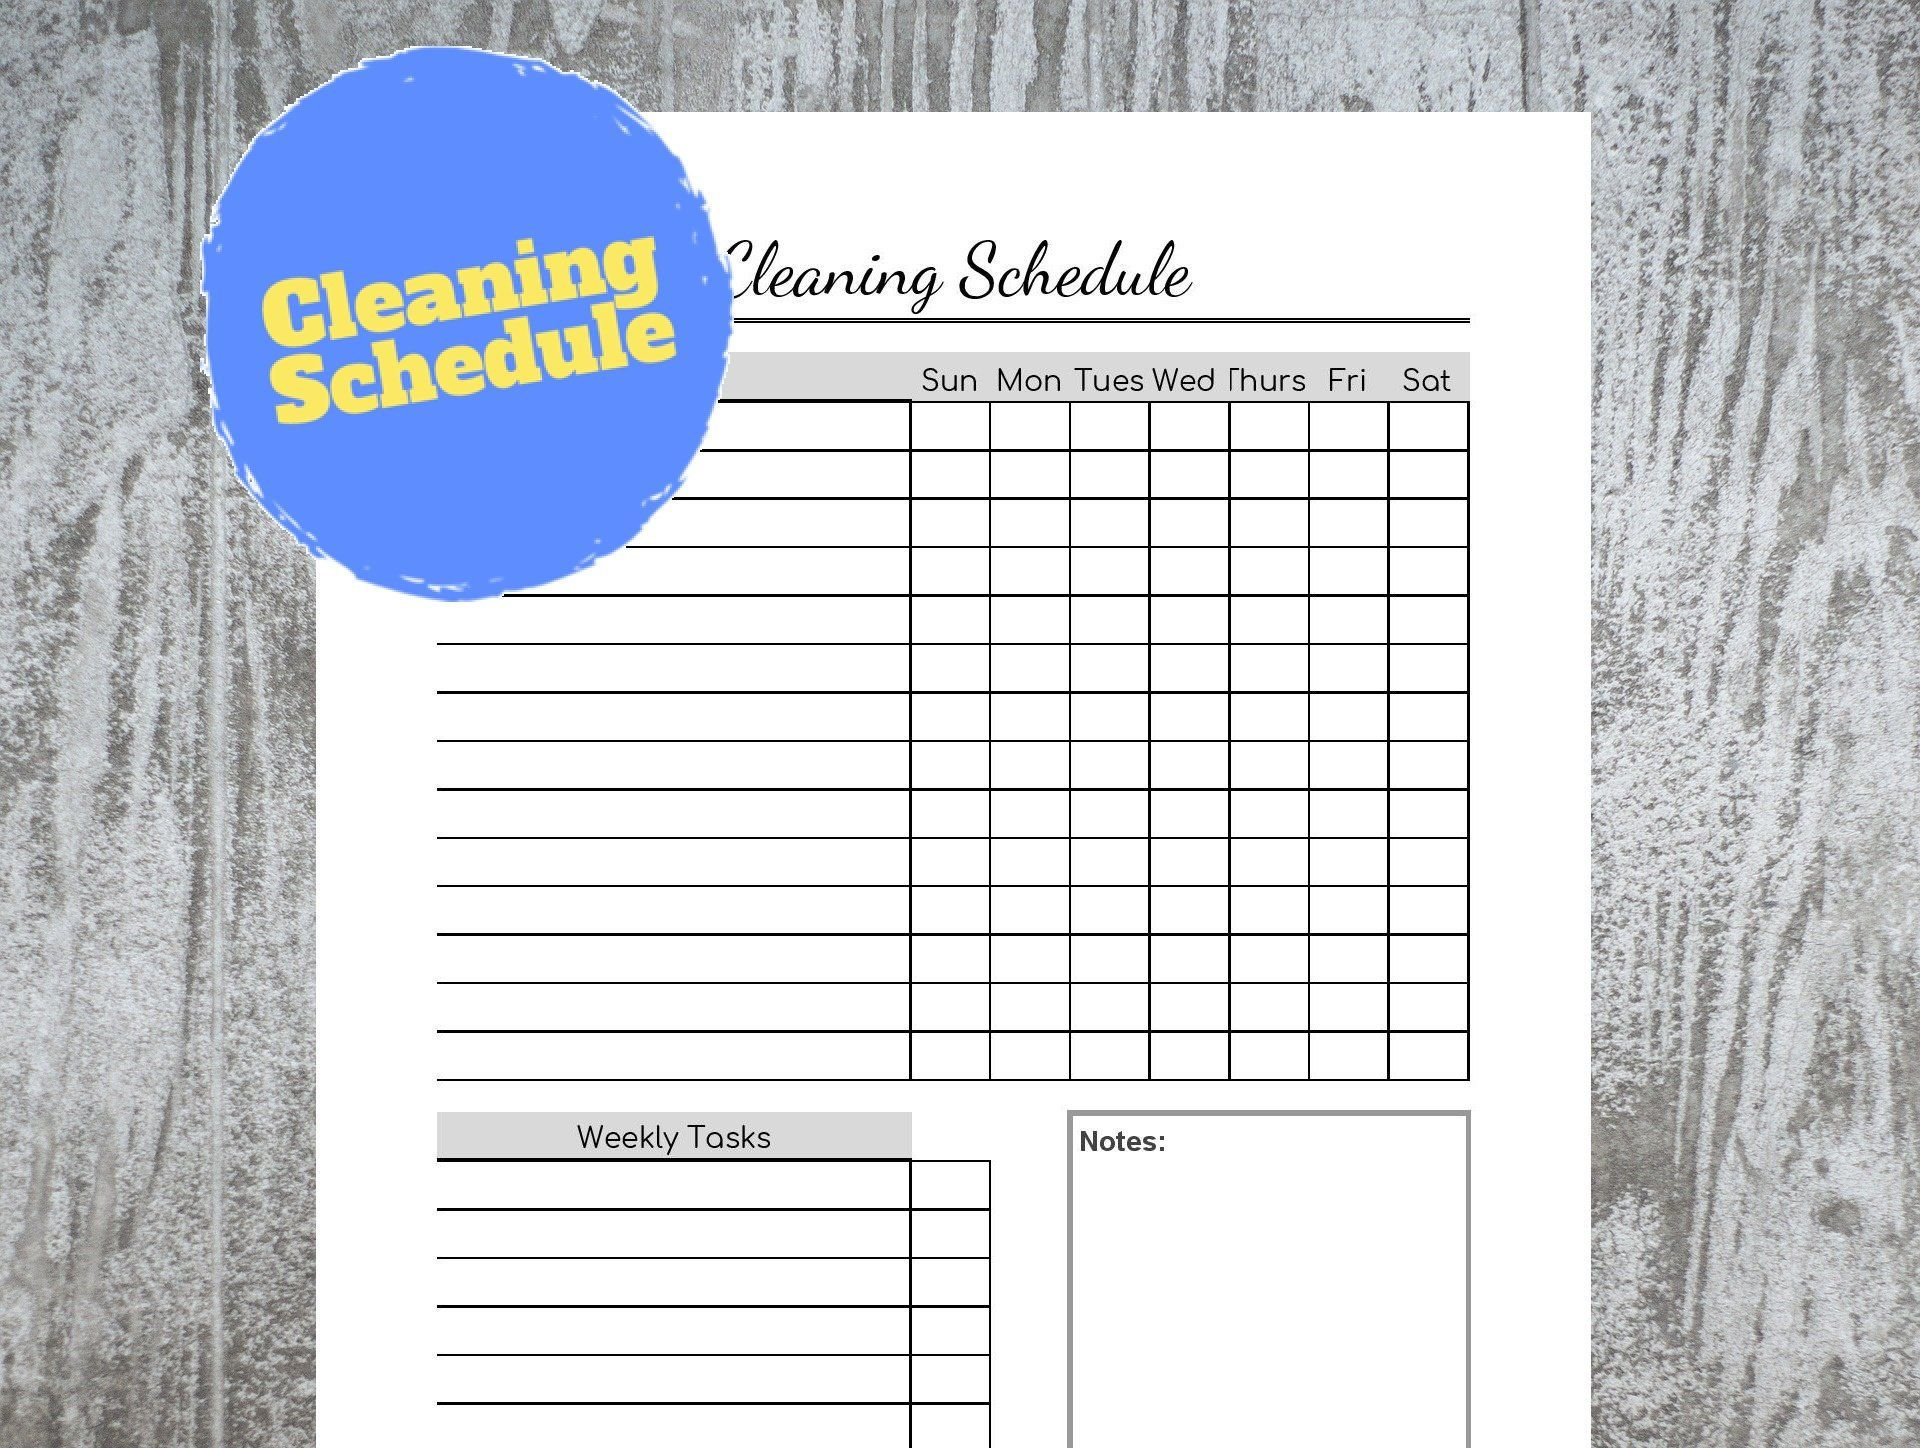 Cleaning Schedule Chore List Cleaning Checklist